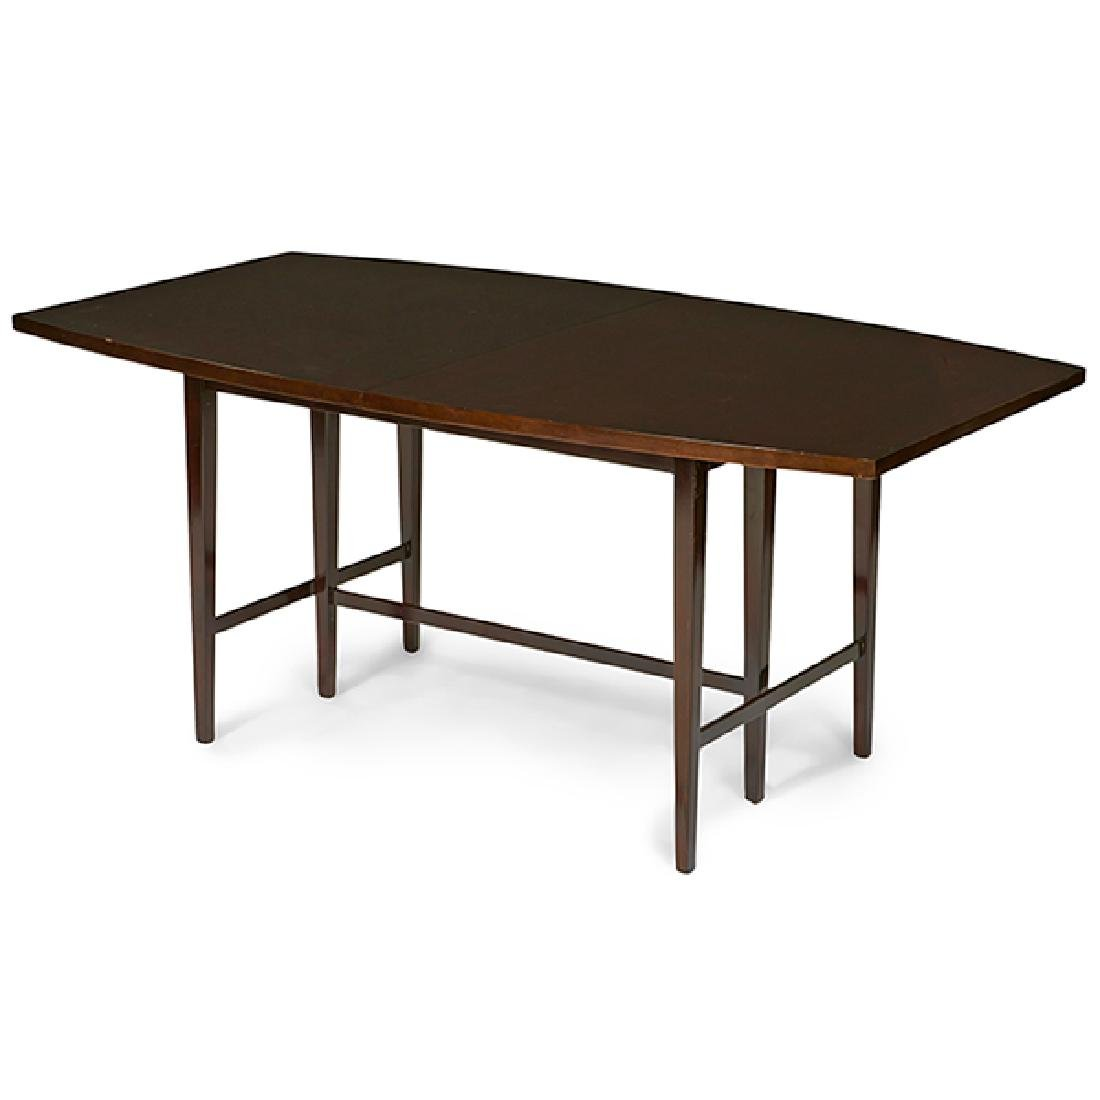 Paul McCobb for Winchendon Planner Group dining table